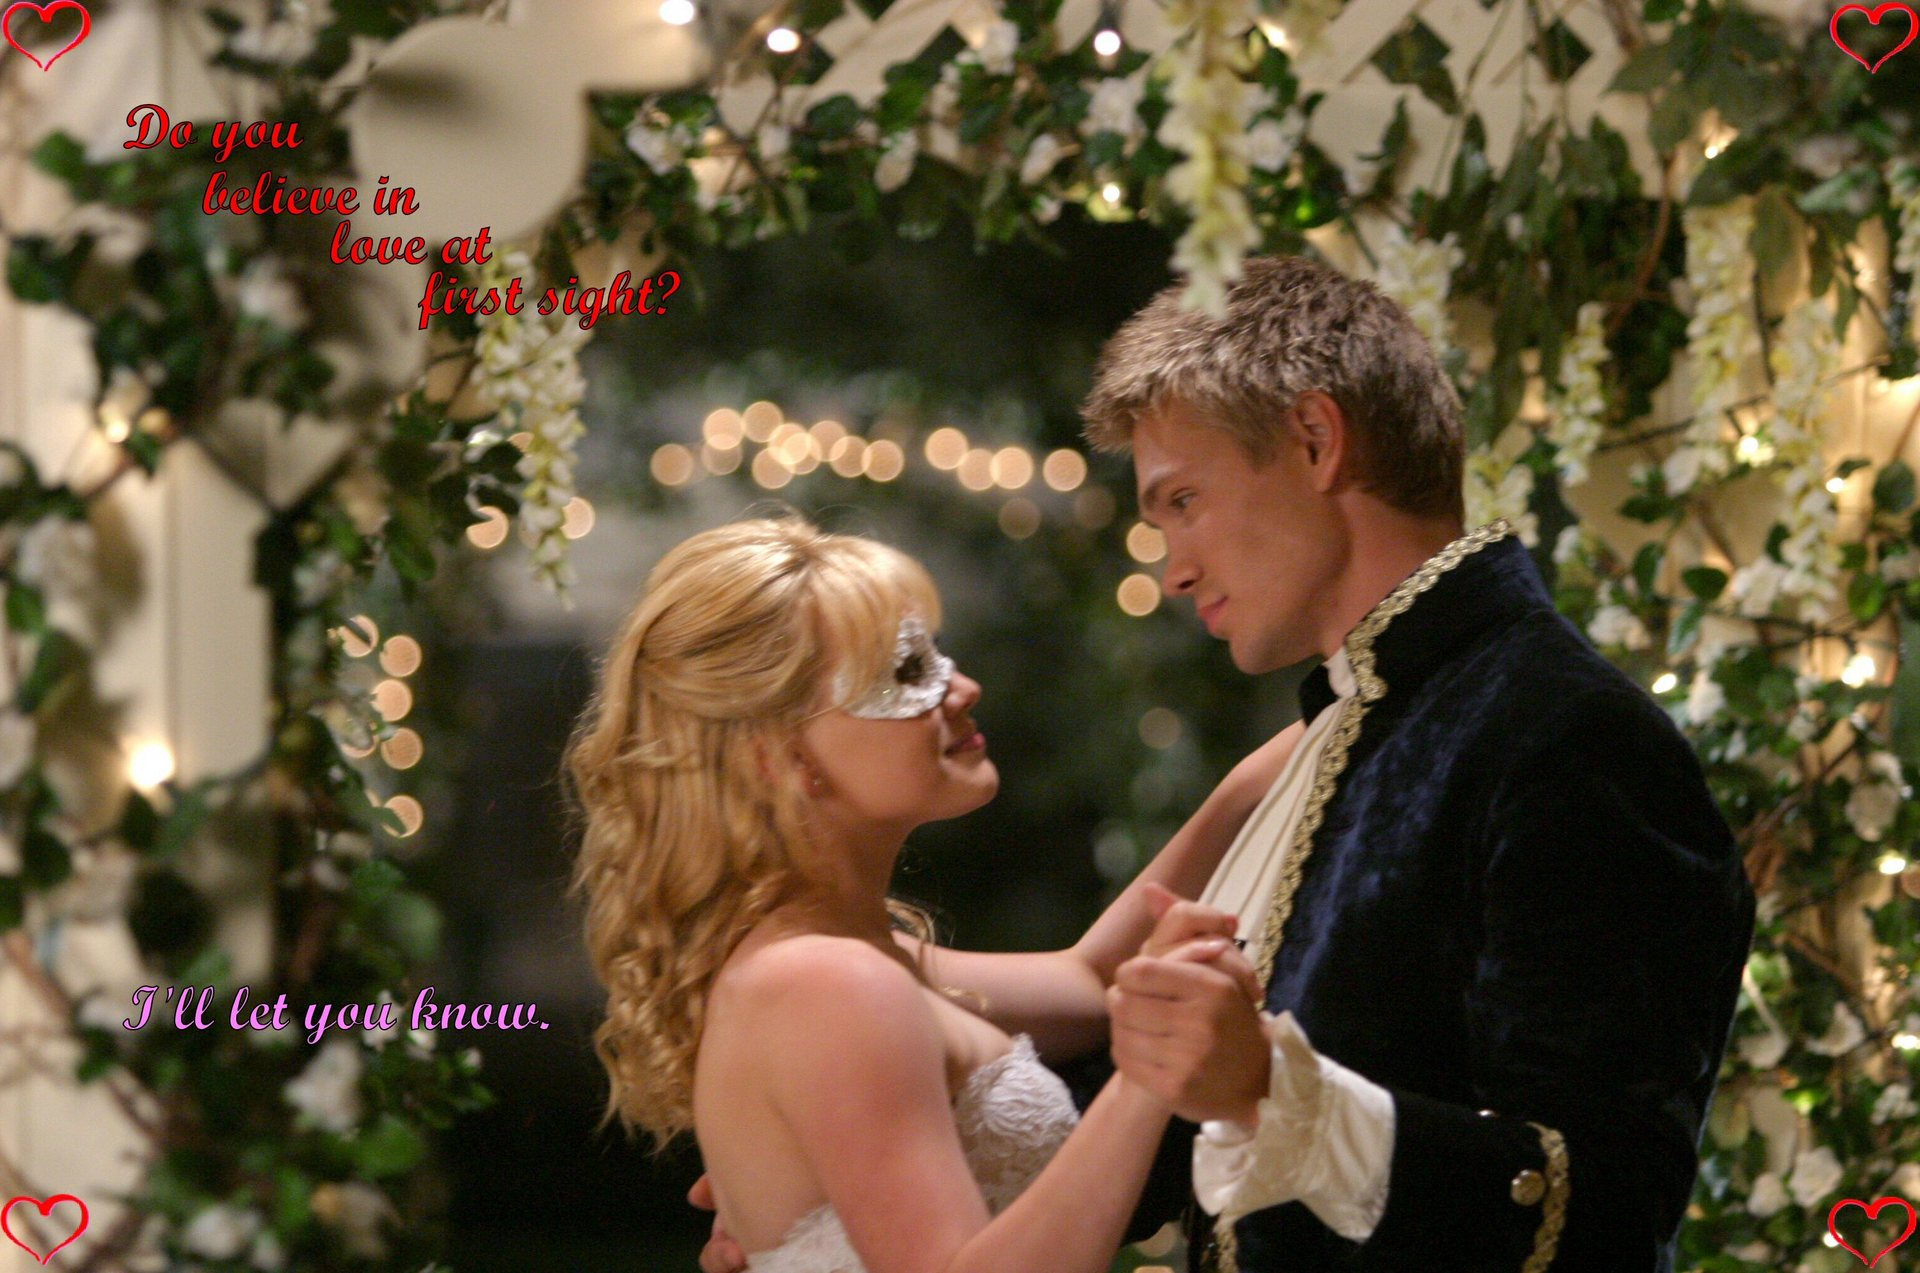 https://i2.wp.com/images1.fanpop.com/images/image_uploads/Austin-and-Sam-a-cinderella-story-1049005_1920_1273.jpg